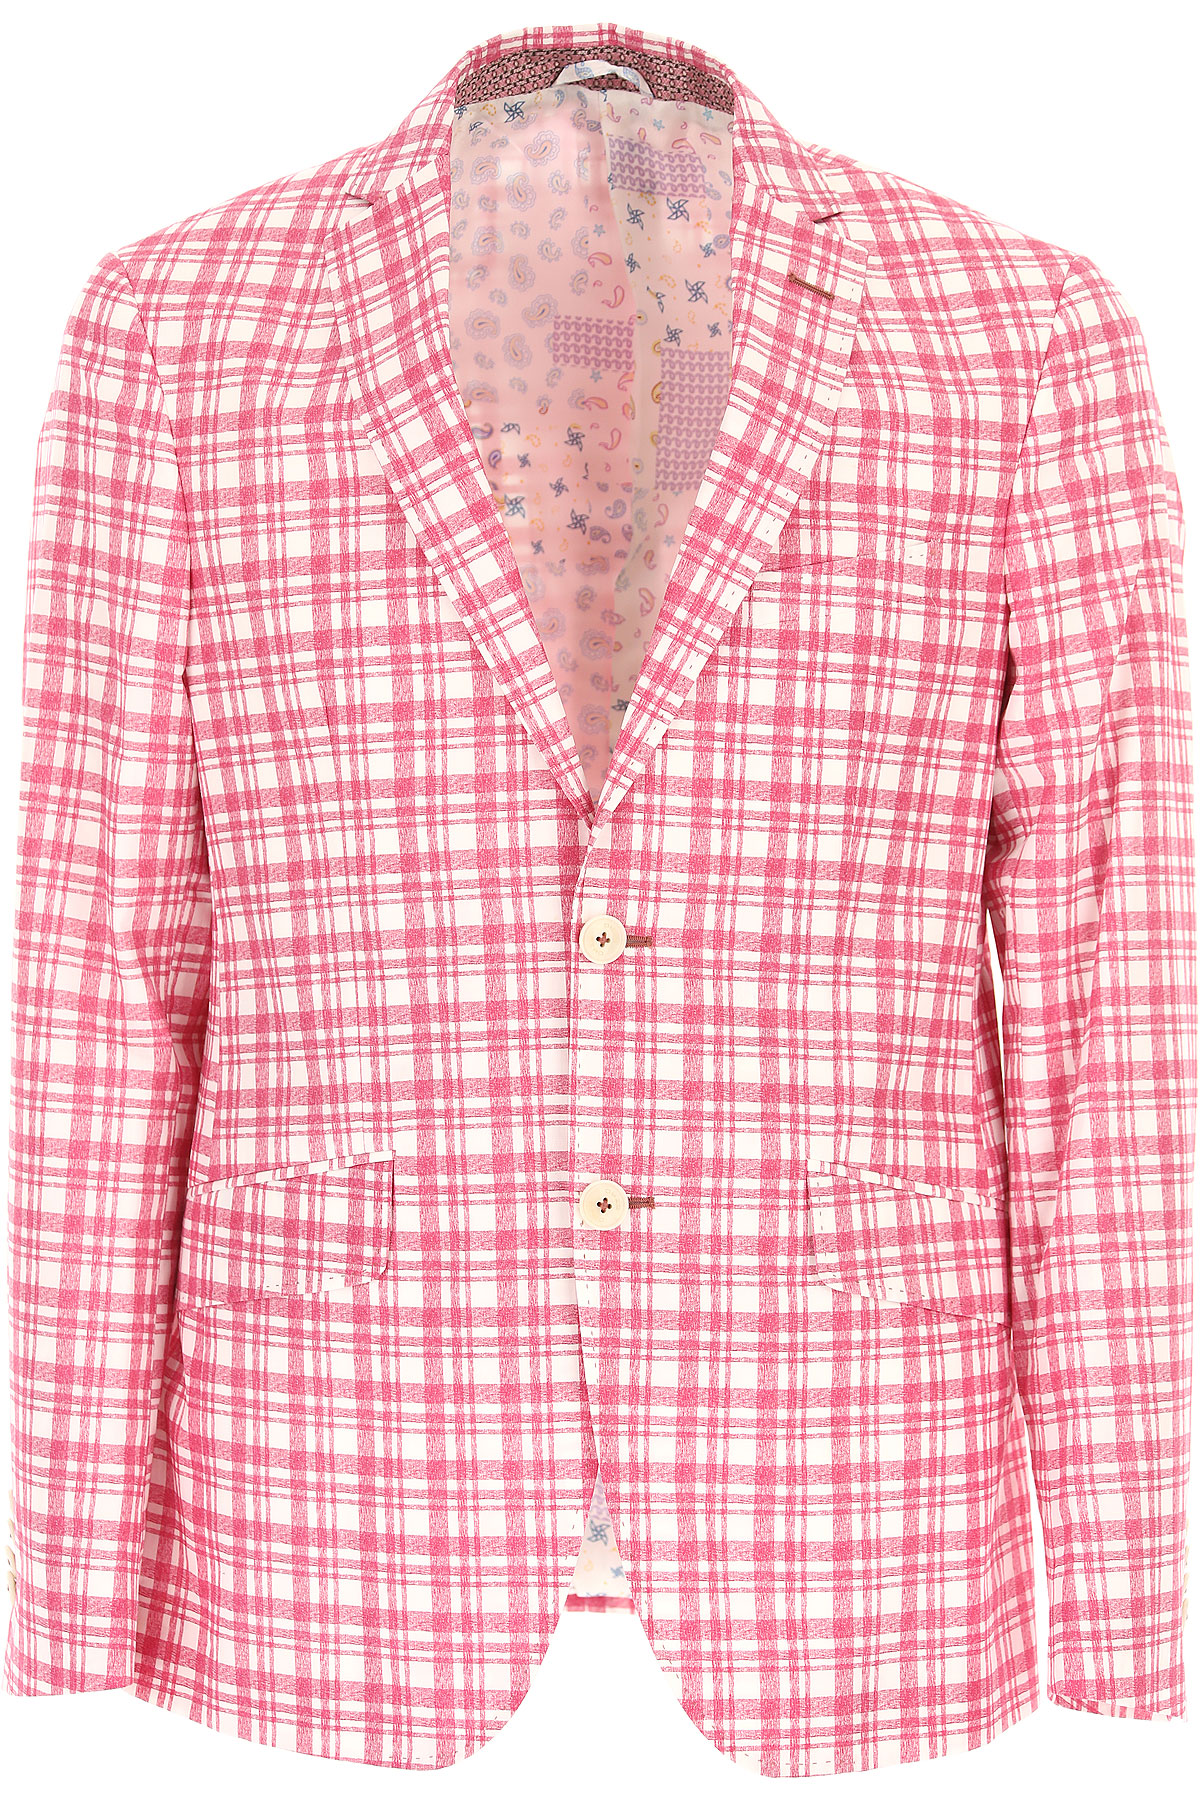 Etro Blazer for Men, Sport Coat On Sale in Outlet, White, Cotton, 2019, L XL